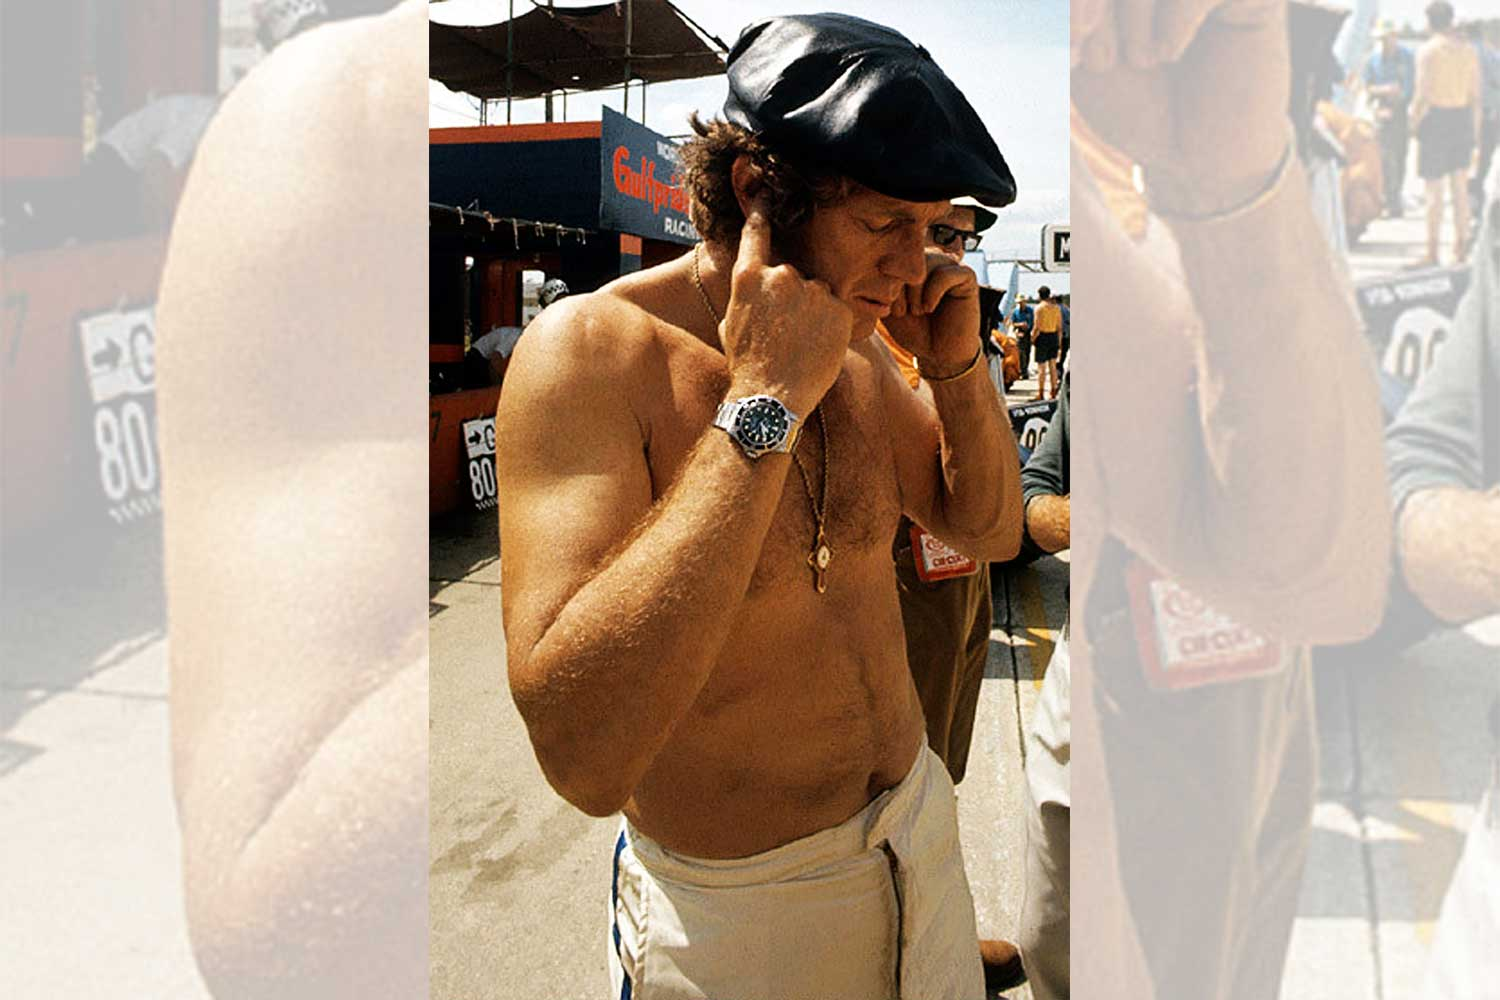 A shirtless Steve McQueen on the track at Sebring 1970 with the Submariner 5512 on his wrist (Image: rolexmagazine.com)